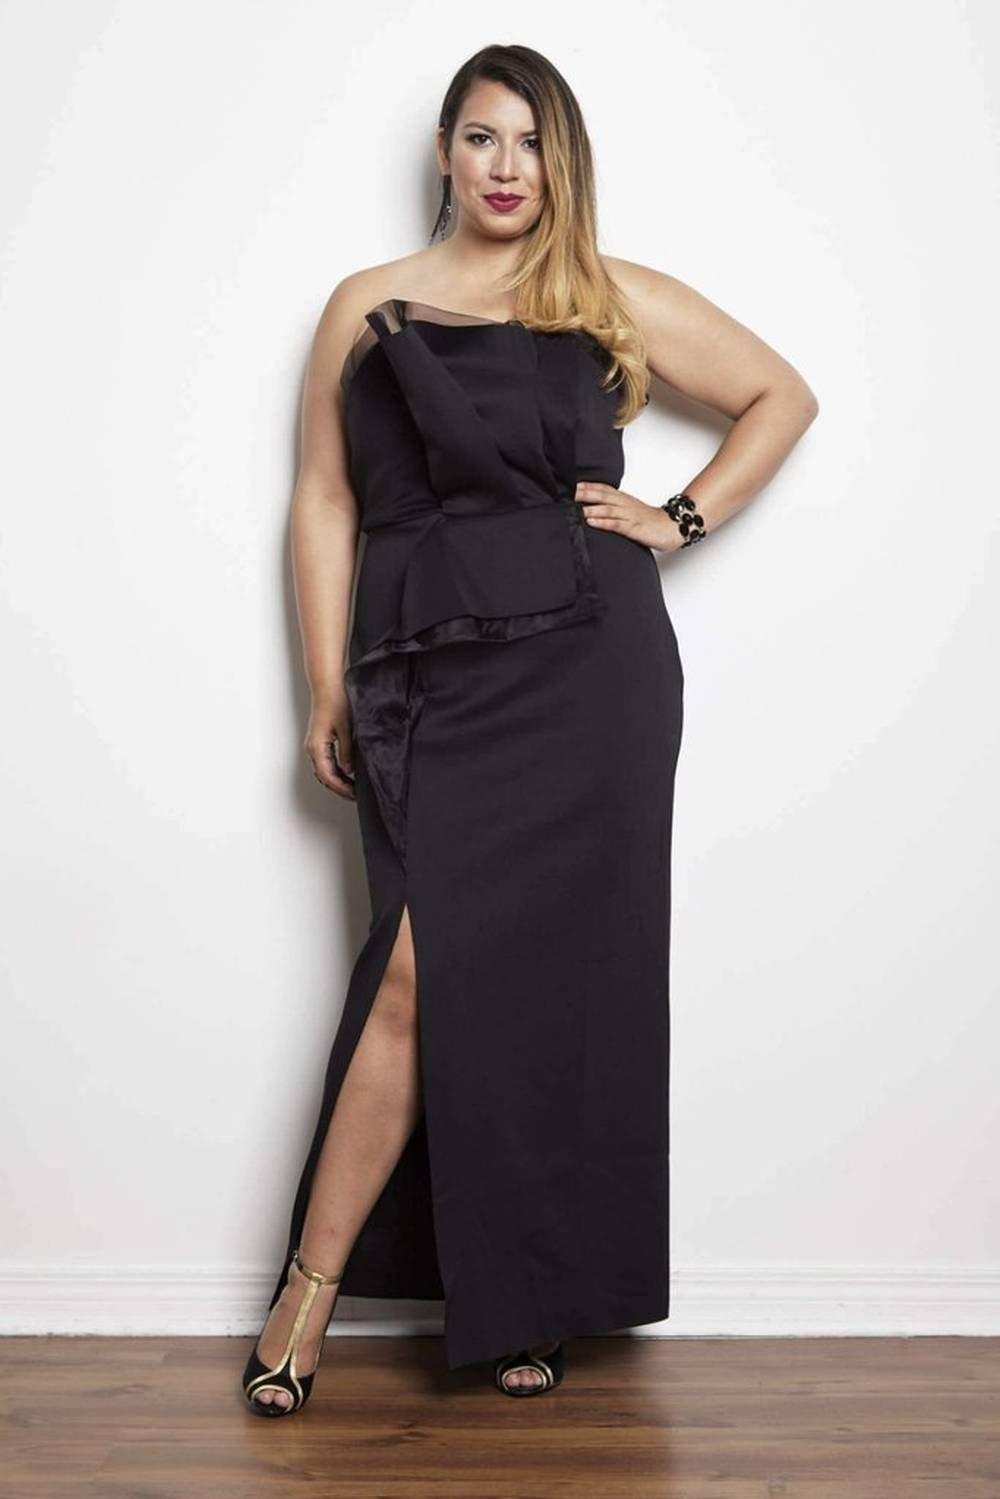 fitzroy rental plus size fashion subscription